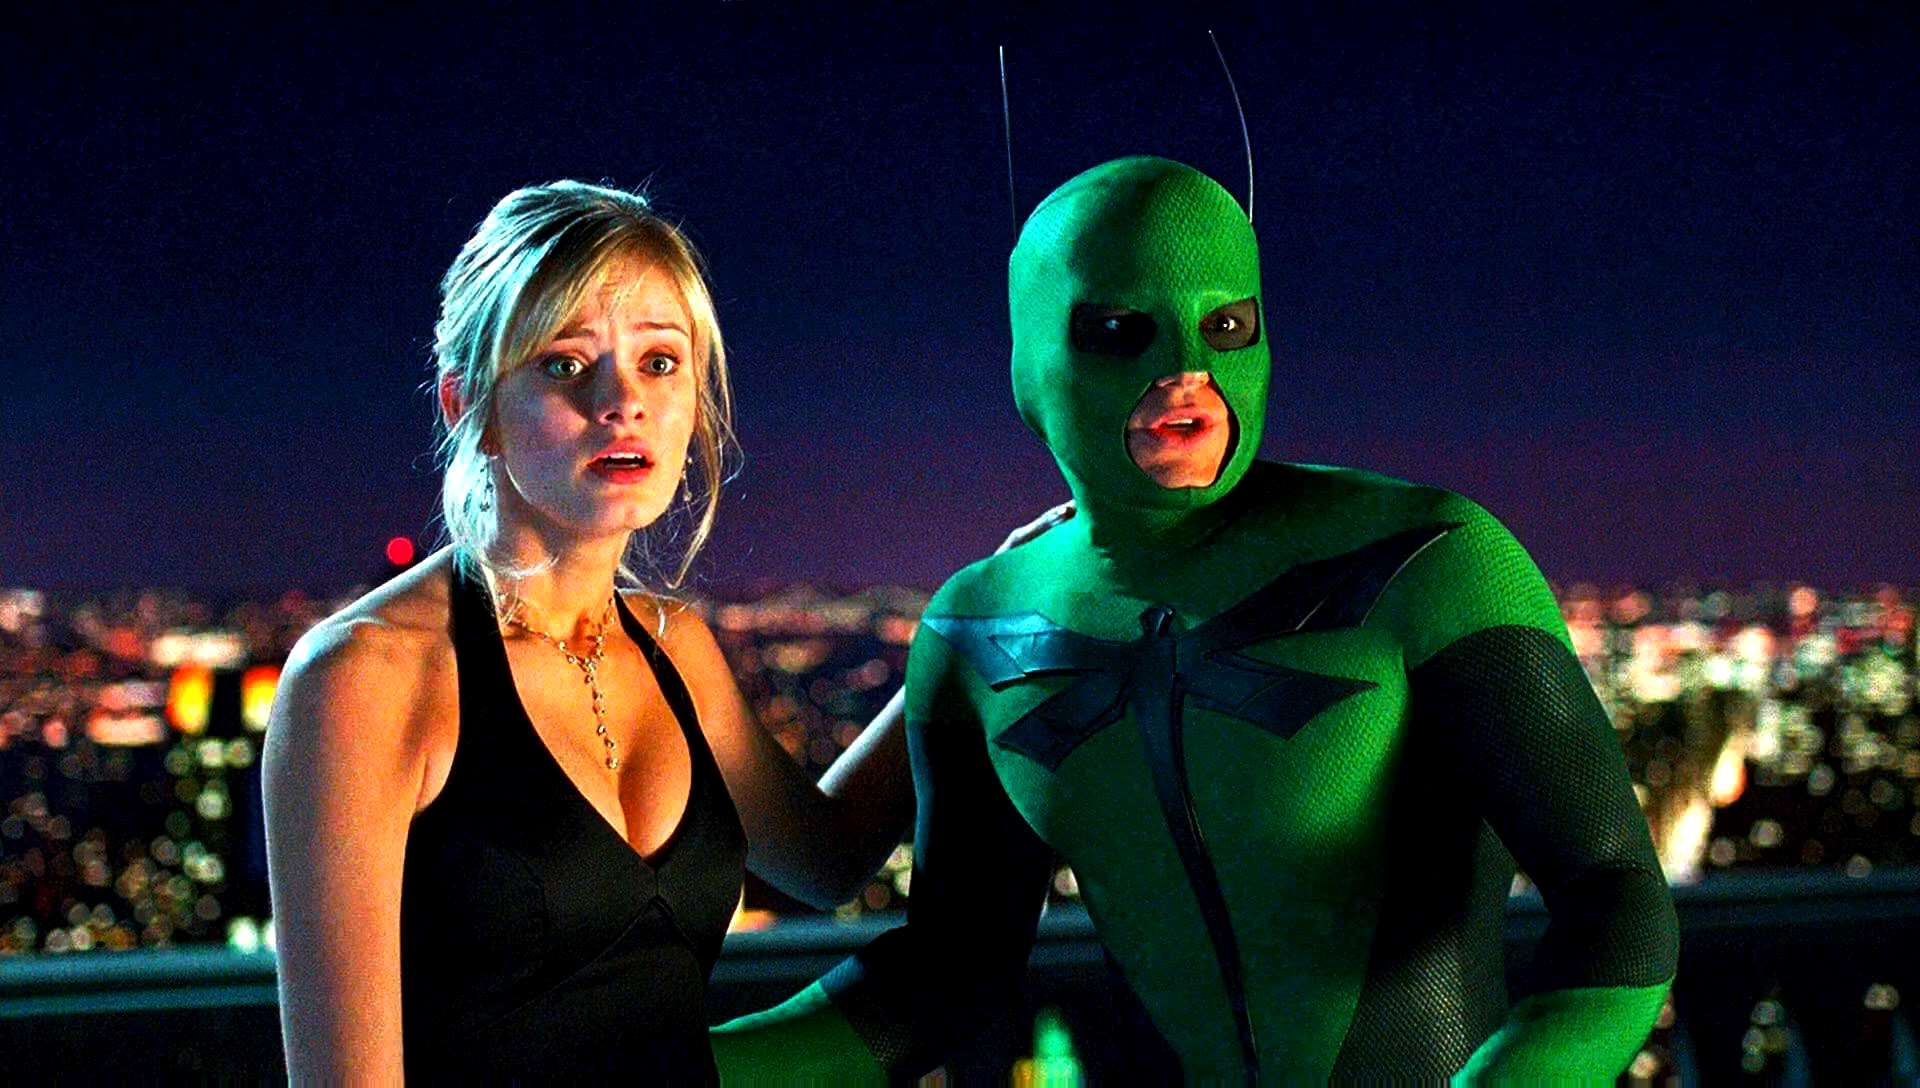 Sara Paxton, Drake Bell as The Dragonfly in Superhero Movie (2008)